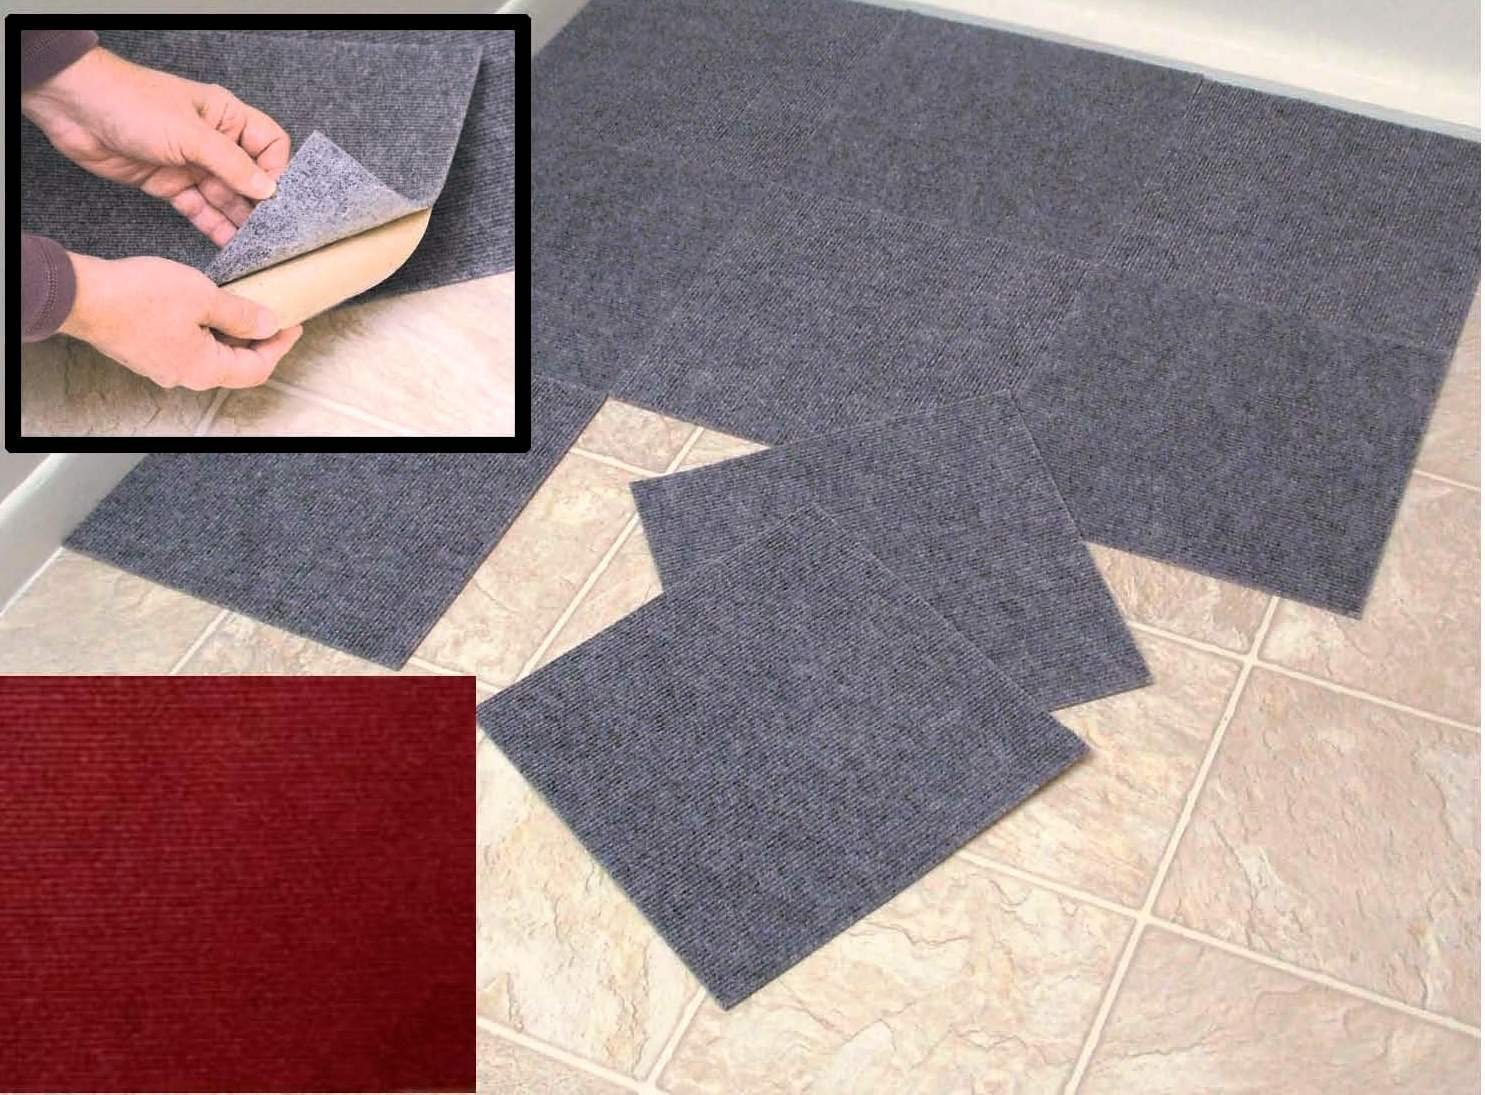 Amazon peel and stick beige berber carpet tiles 12x12 set amazon peel and stick beige berber carpet tiles 12x12 set of 10 by jumbl kitchen dining baanklon Choice Image